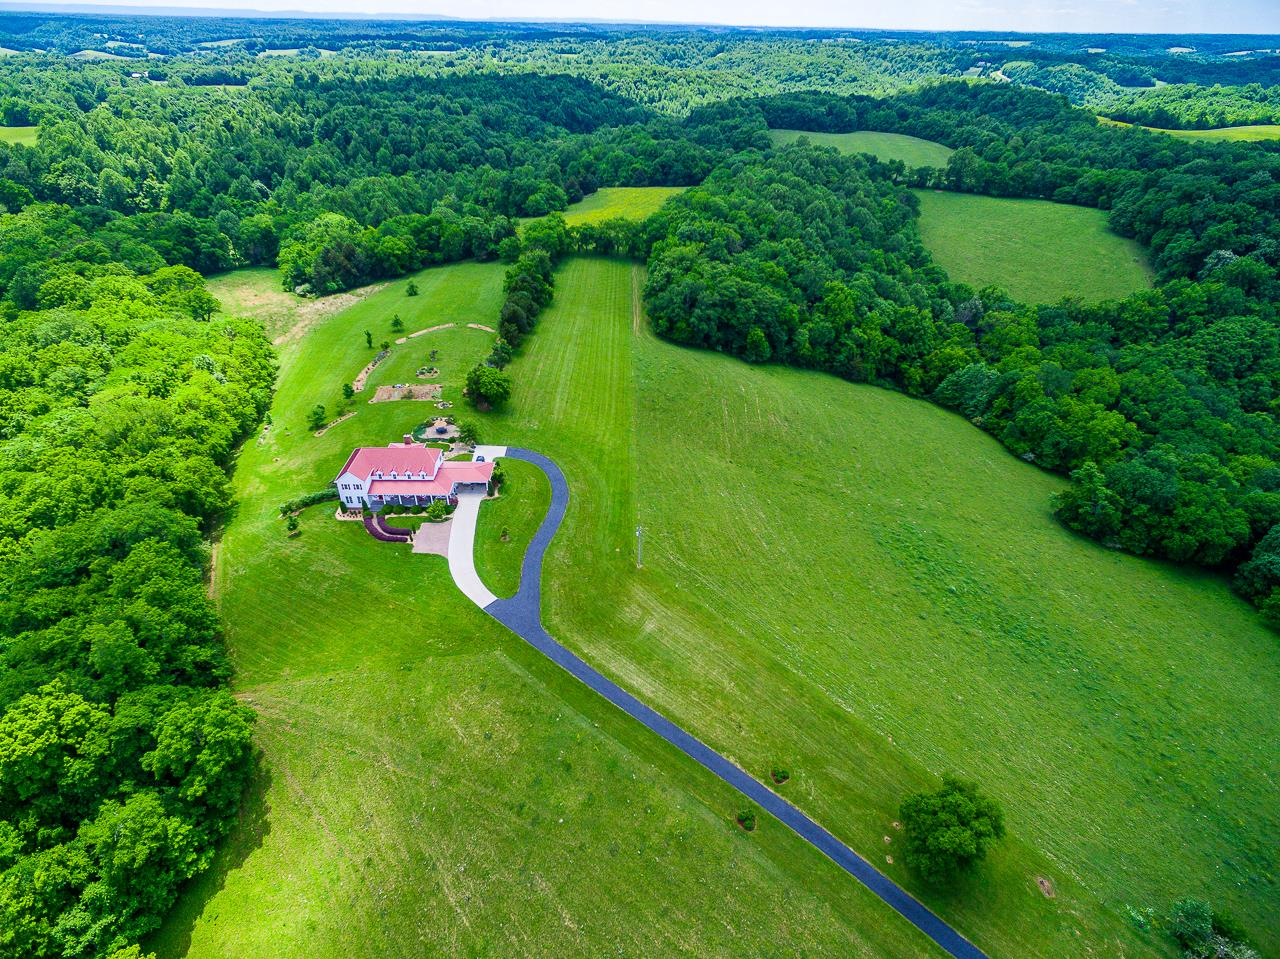 598 Bottle Hollow Rd, Shelbyville, TN 37160 - Shelbyville, TN real estate listing